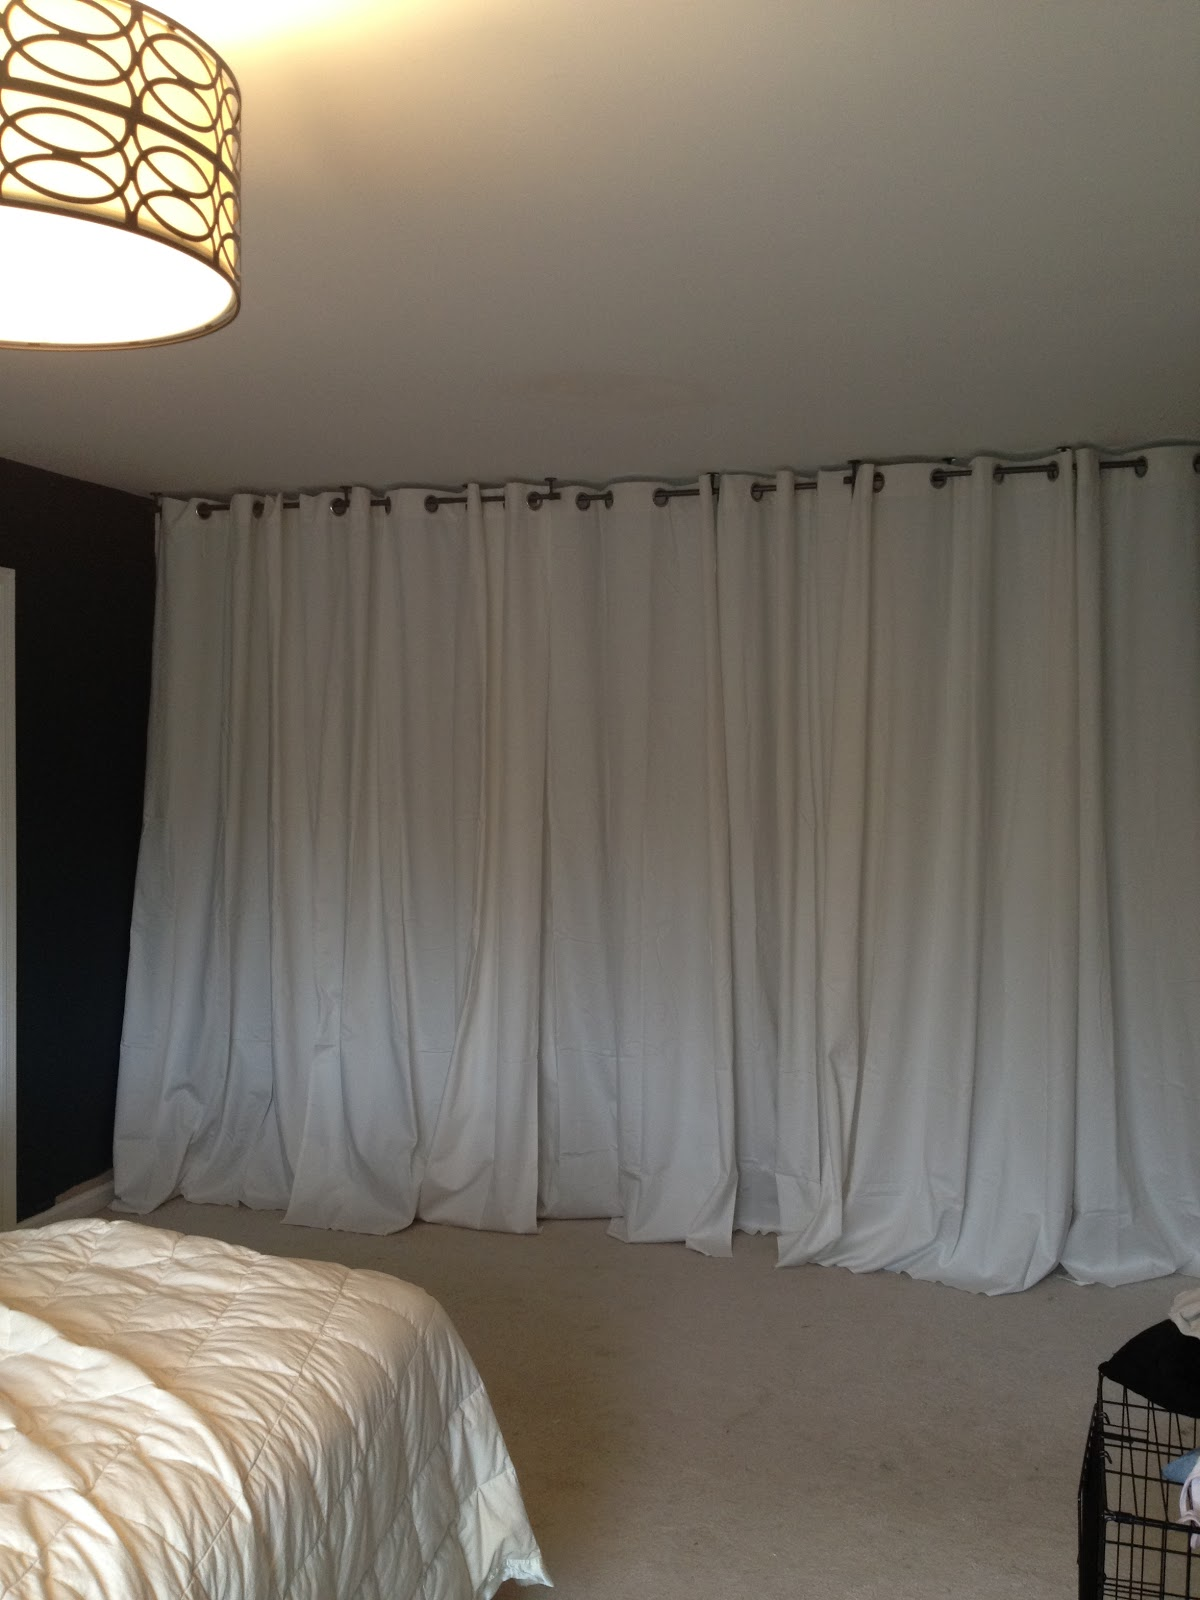 20 diy room dividers to help utilize every inch of your home - Room divider curtain ideas ...